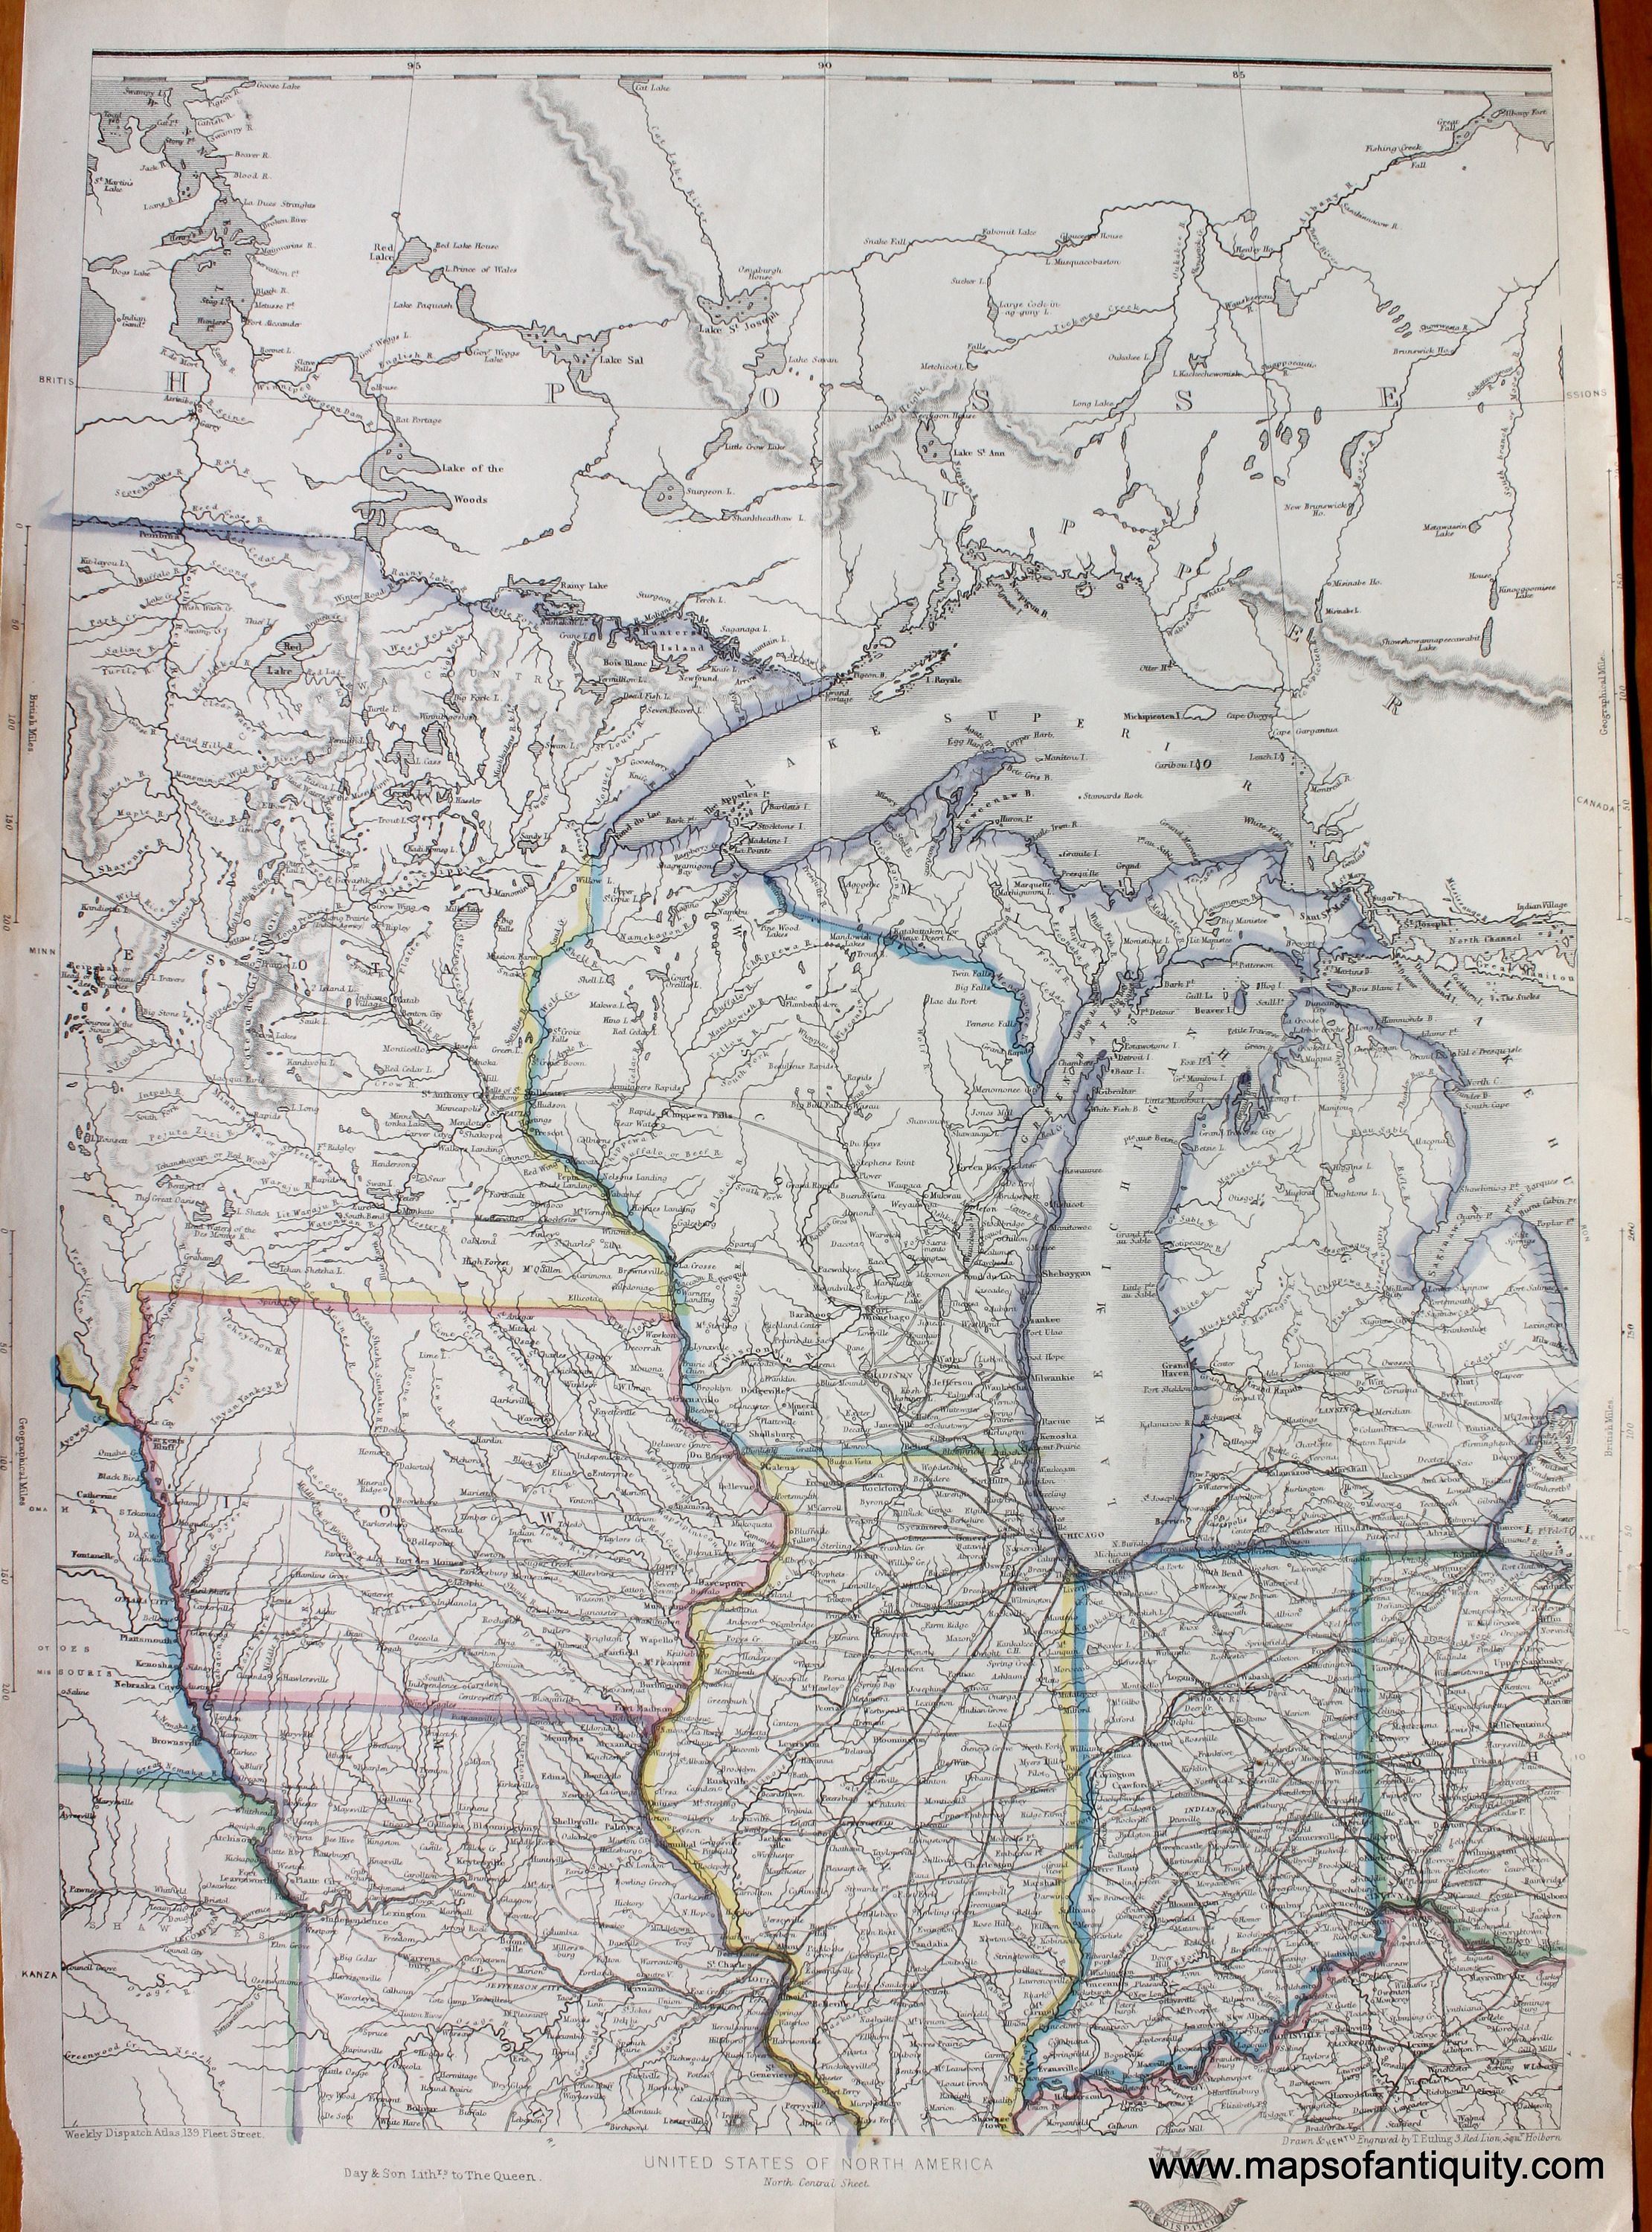 North Central Us Map.Northern United States North Central Sheet Antique Maps And